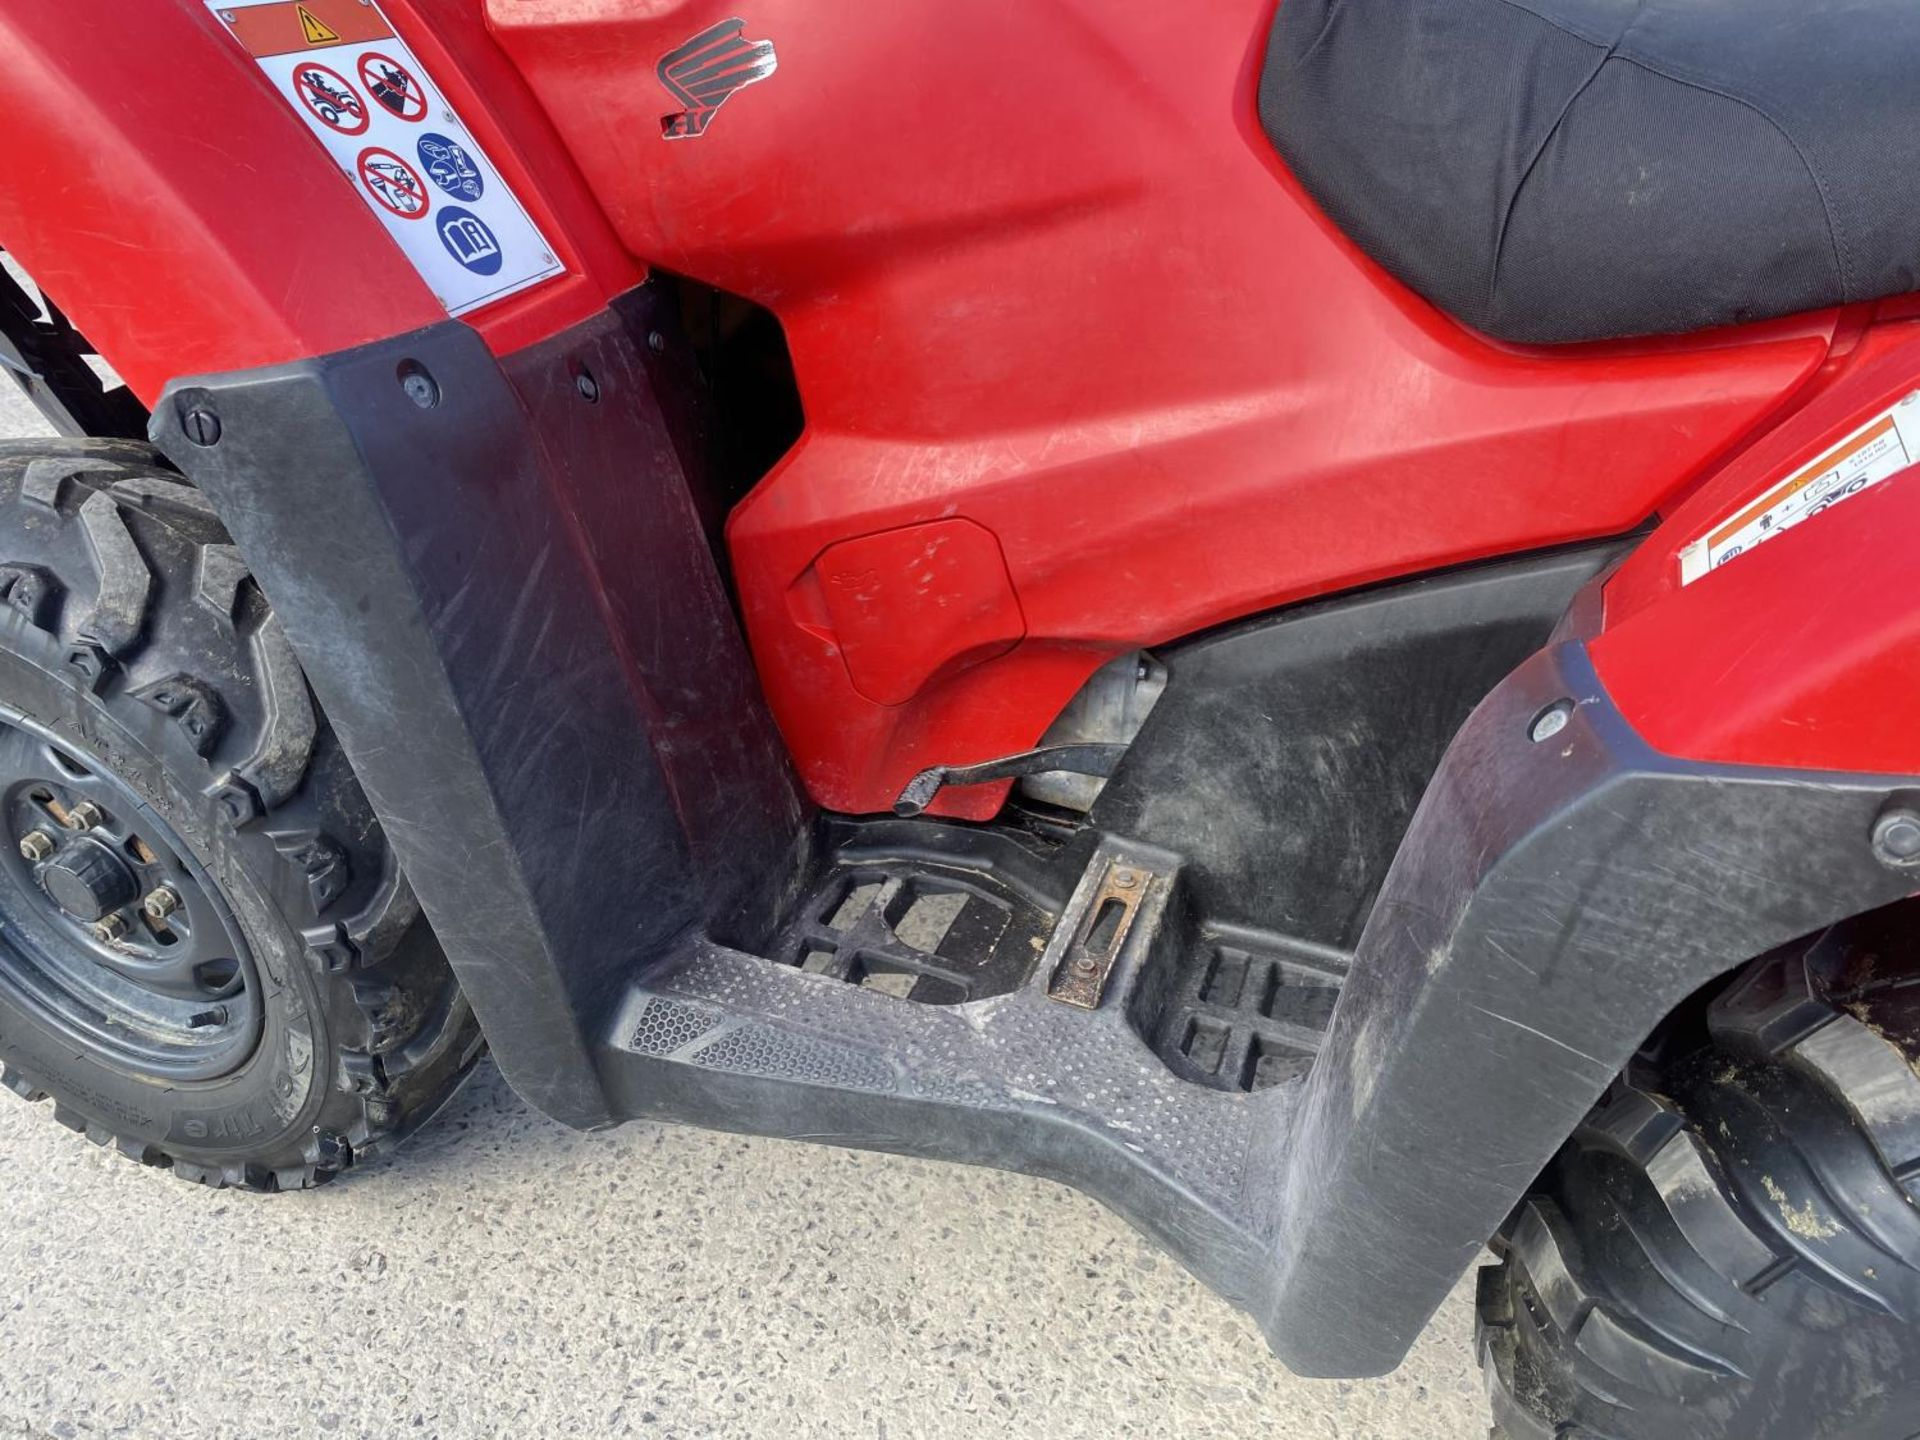 A 2017 HONDA TRX 420 QUAD BIKE - SEE VIDEO OF VEHICLE STARTING AND RUNNING AT https://www.youtube. - Image 8 of 10